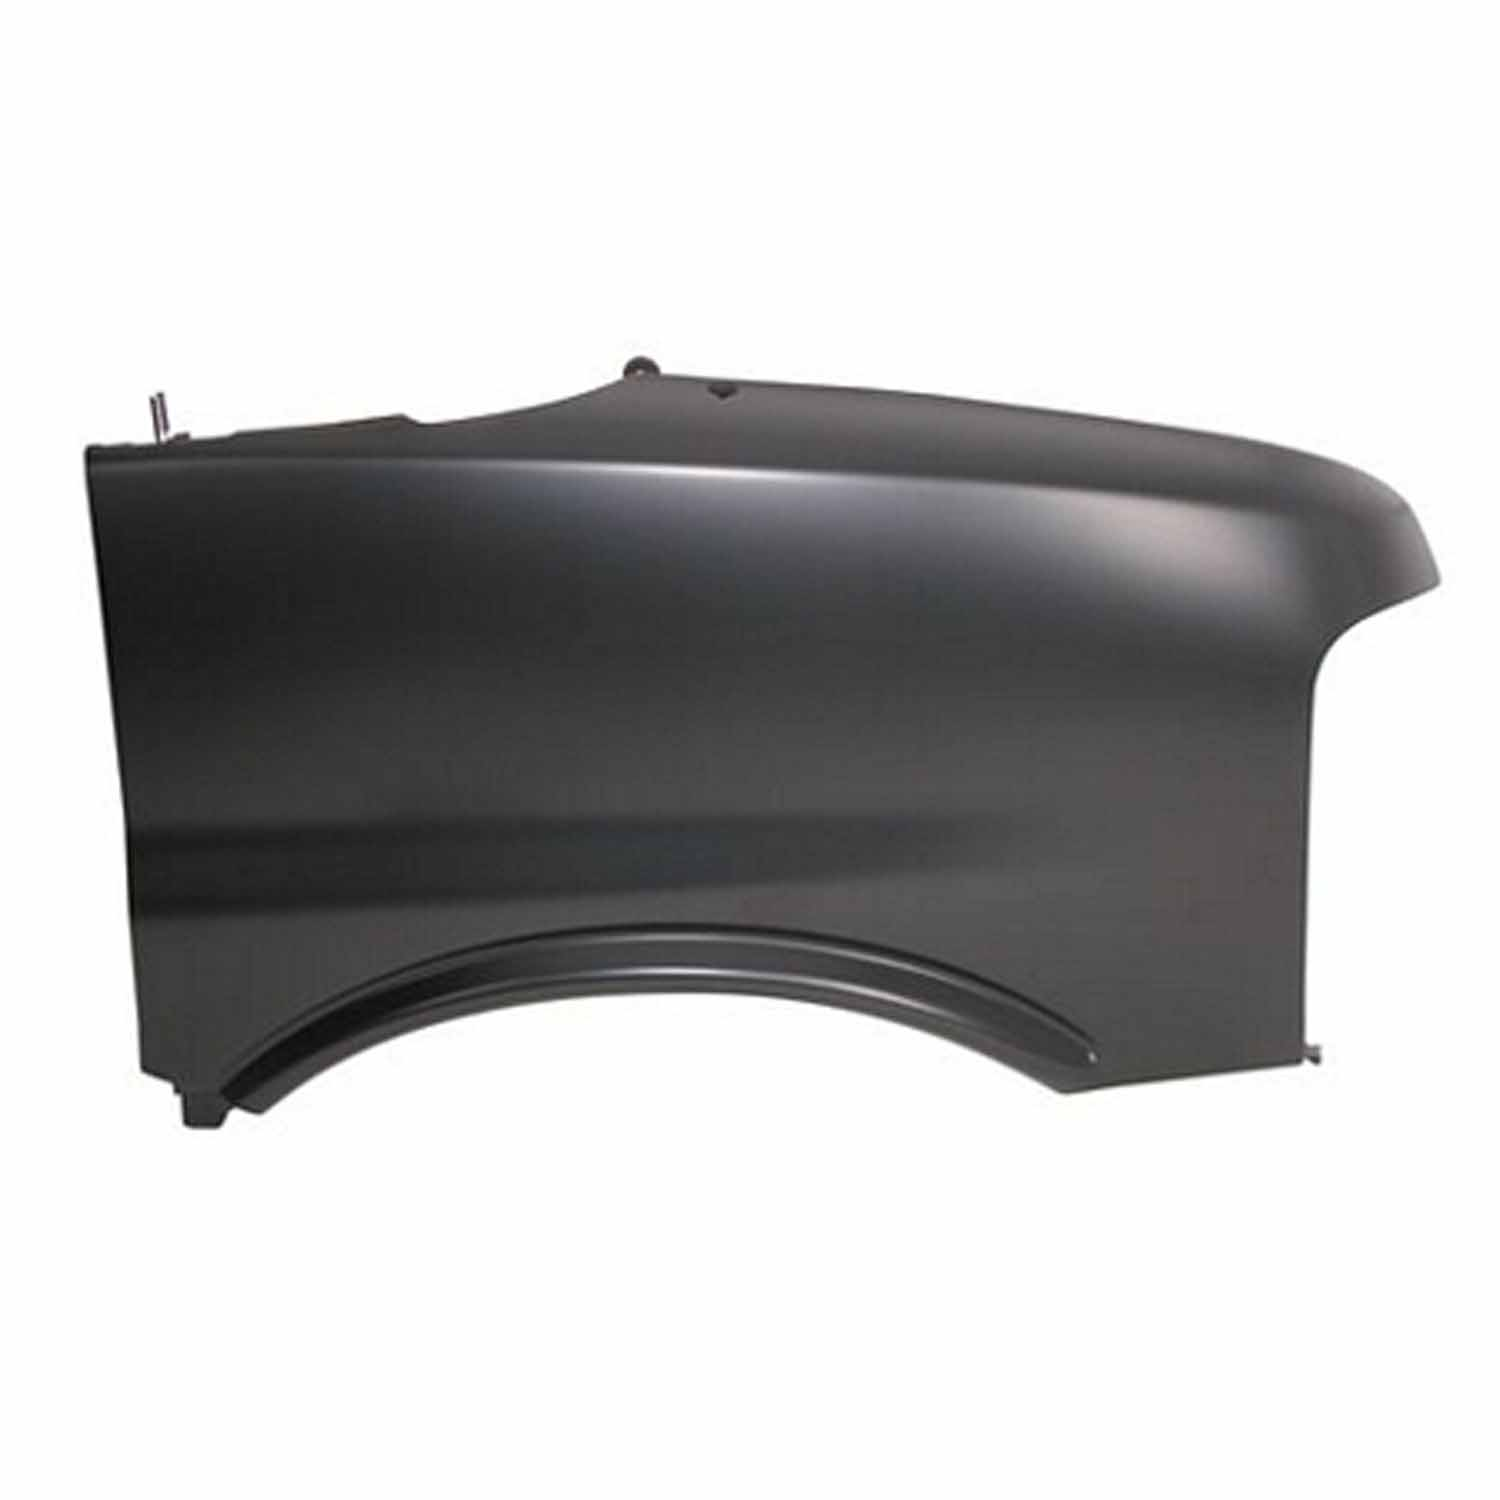 New Right Front Fender For Chevrolet Express 2500 2003-2017